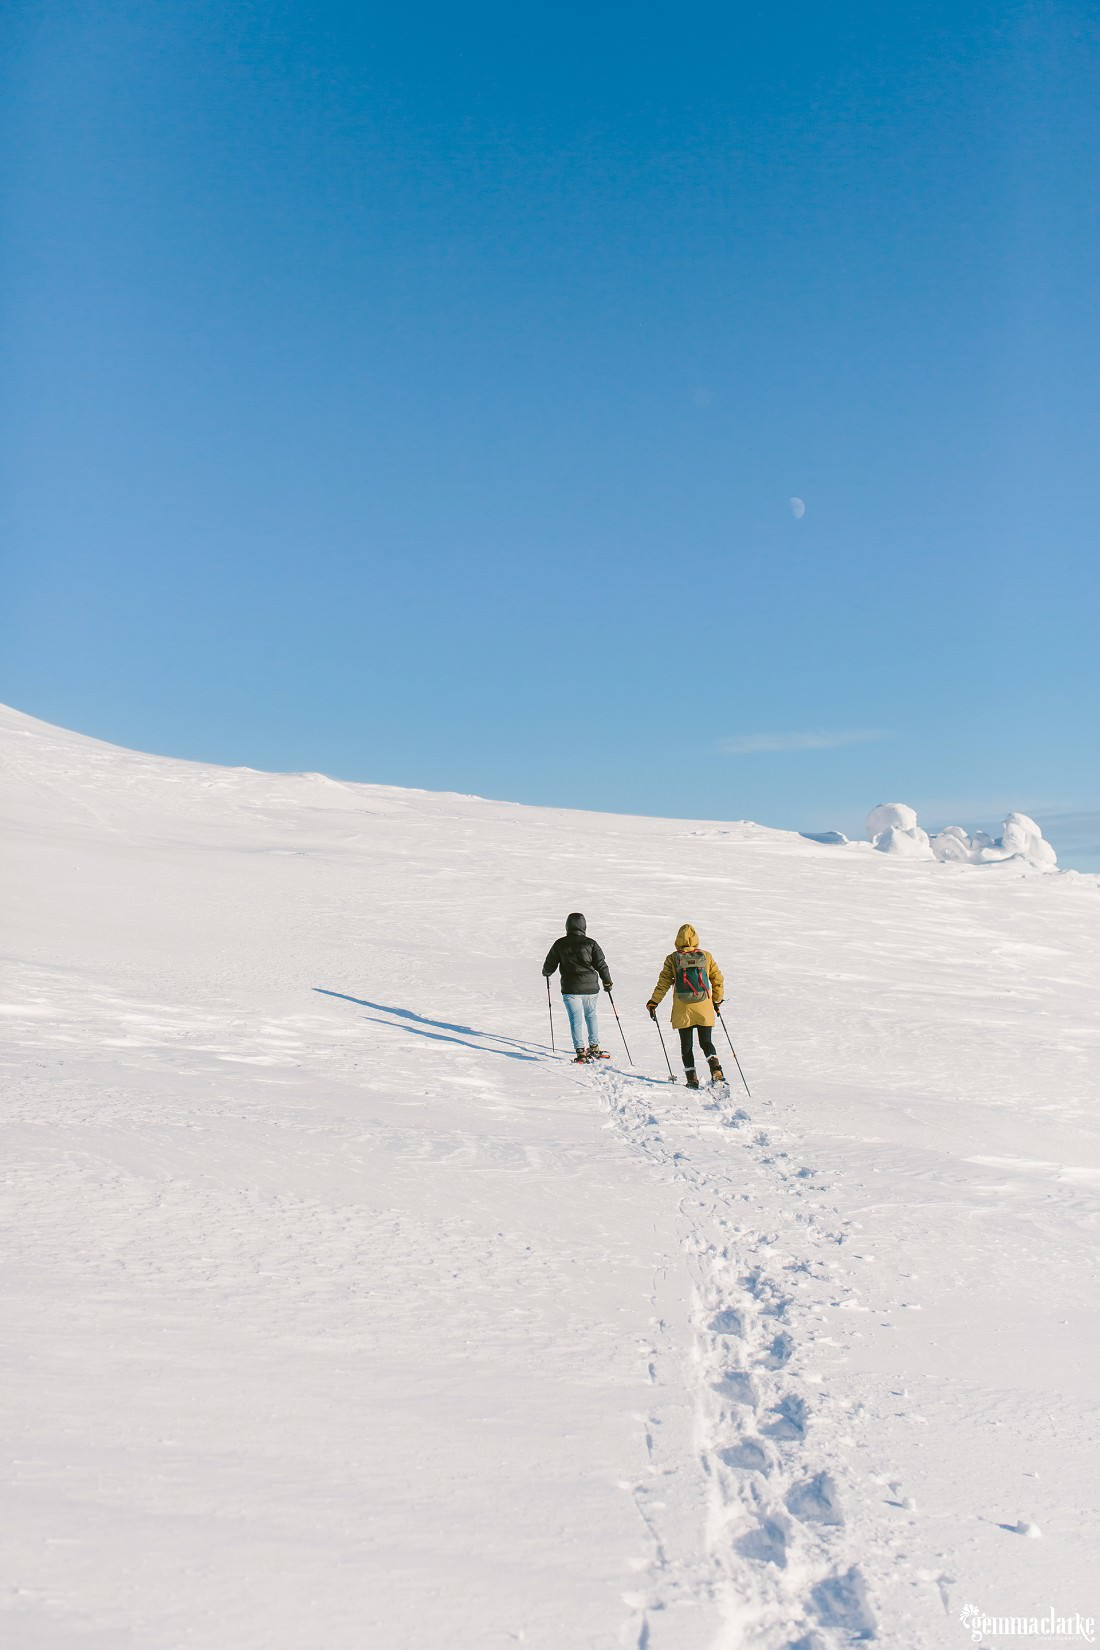 A couple snow-shoeing up a snowy hill